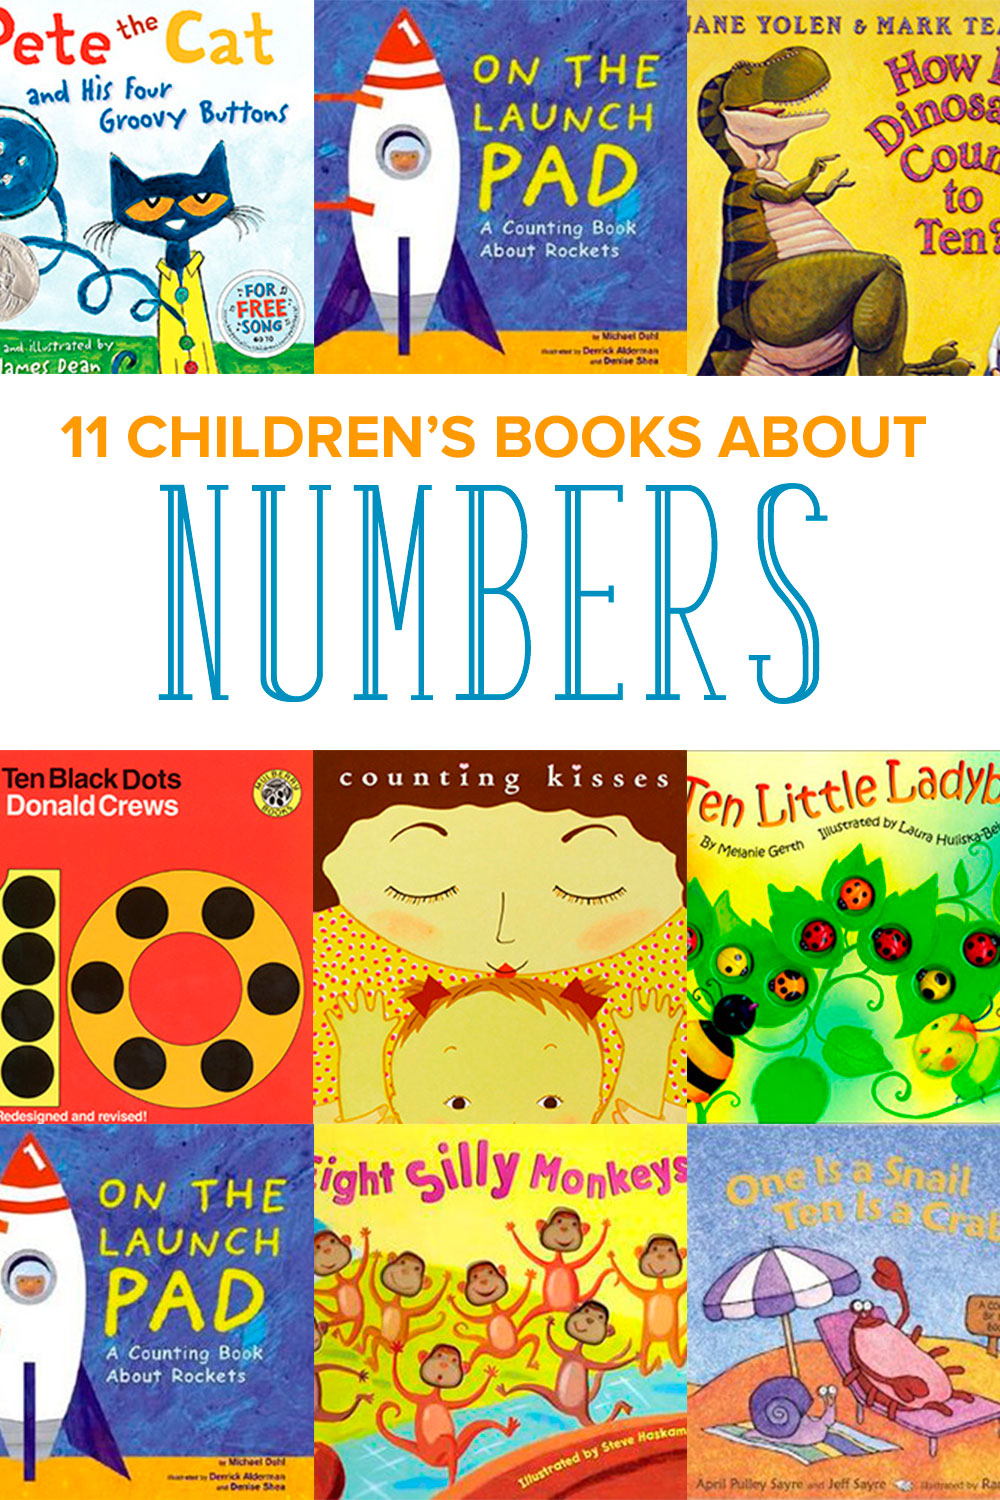 Is your child ready to count and learn about numbers? Books are a great way to start. Read these 11 children's books about numbers and counting.